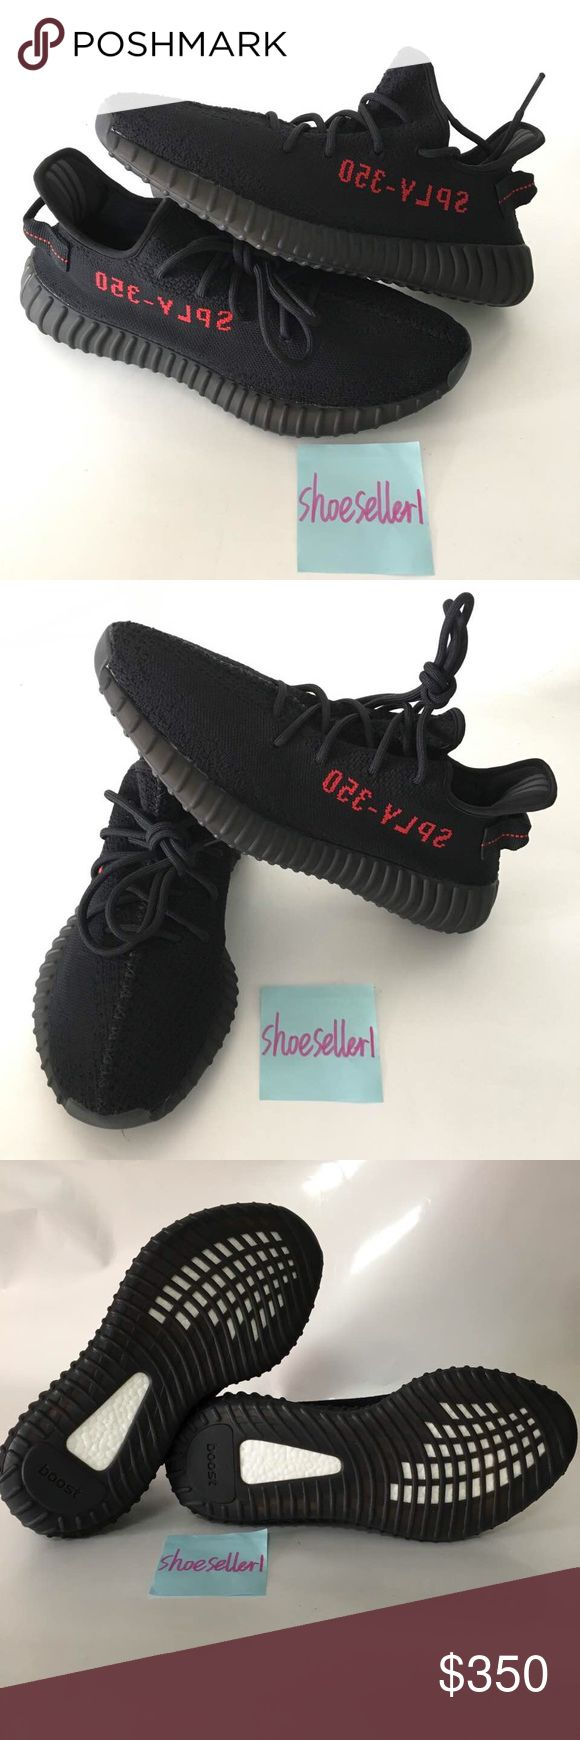 Yeezy Boost V2 Bred Sz 4-13 Brand new authentic Yeezy boost 350 Black with receipt. CP9652 Comes with box and everything Please txt me before ordering Phone # (917) 789-1733 I have good feedback. Seller since 2014 3-5 day shipping Size 5-13 Text before ordering thanks. Yeezy Shoes Sneakers